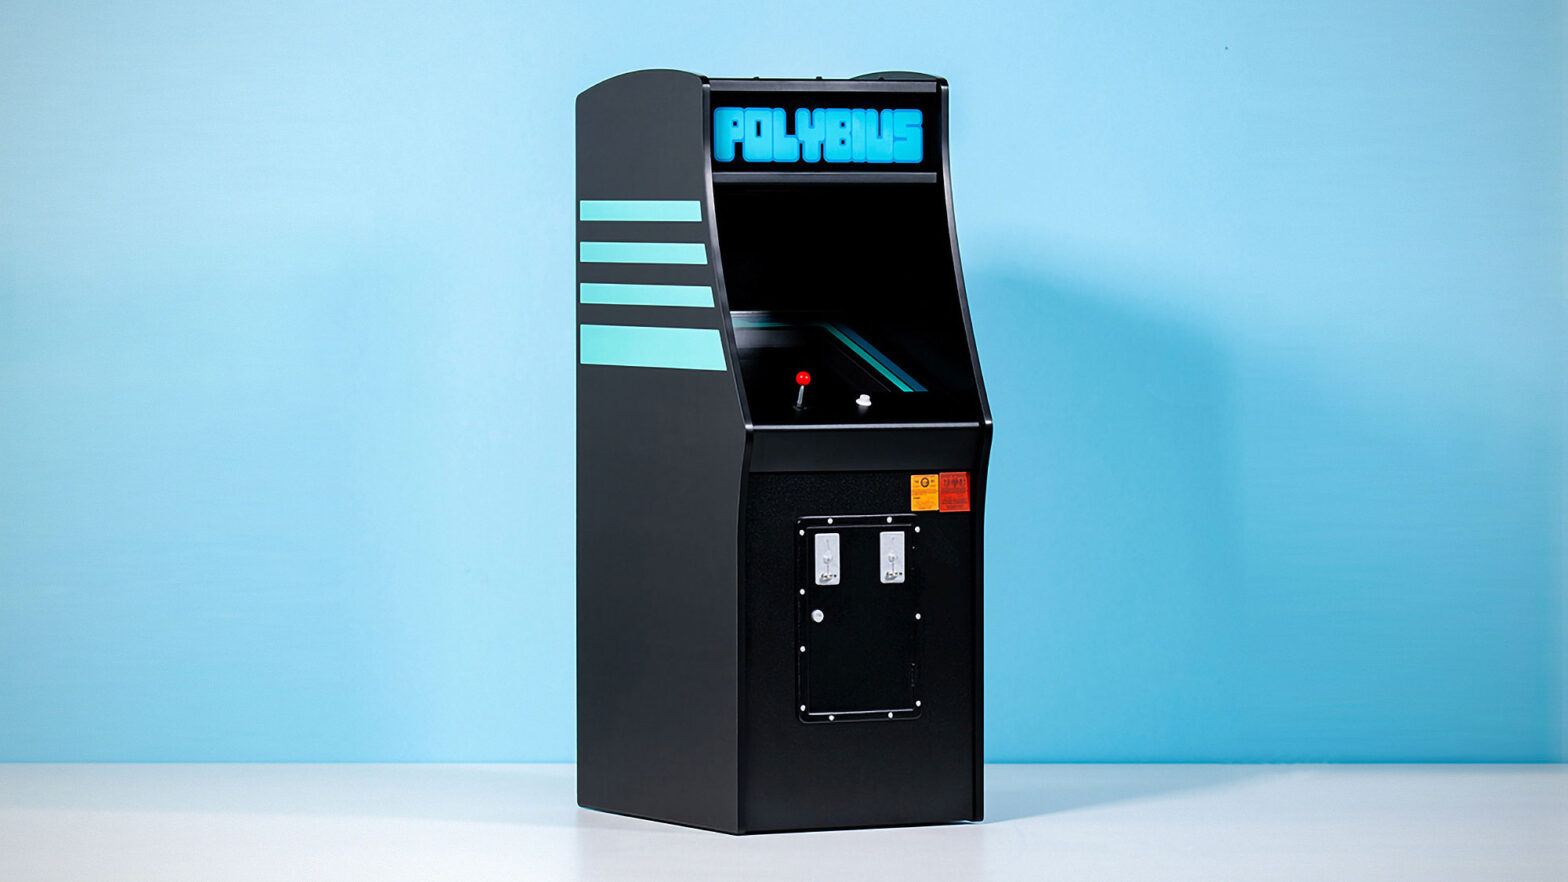 Polybius 1/4 Size Arcade Cabinet Charger